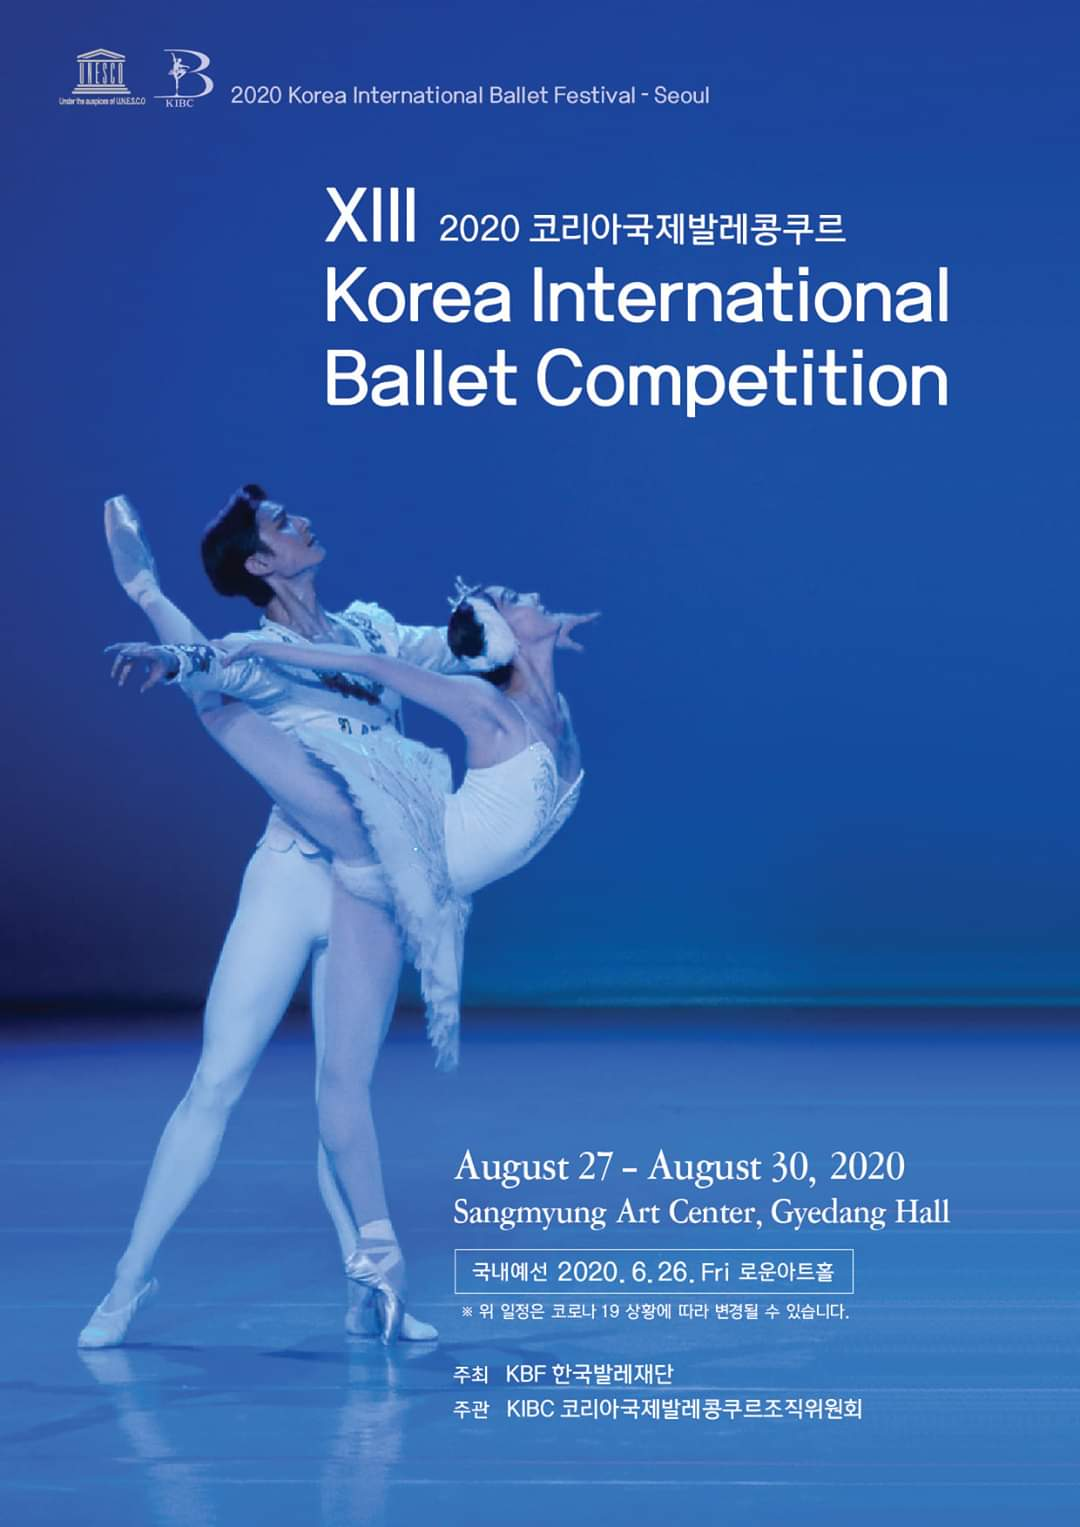 """KOREA INTERNATIONAL BALLET COMPETITION"", SEOUL, KOREA"